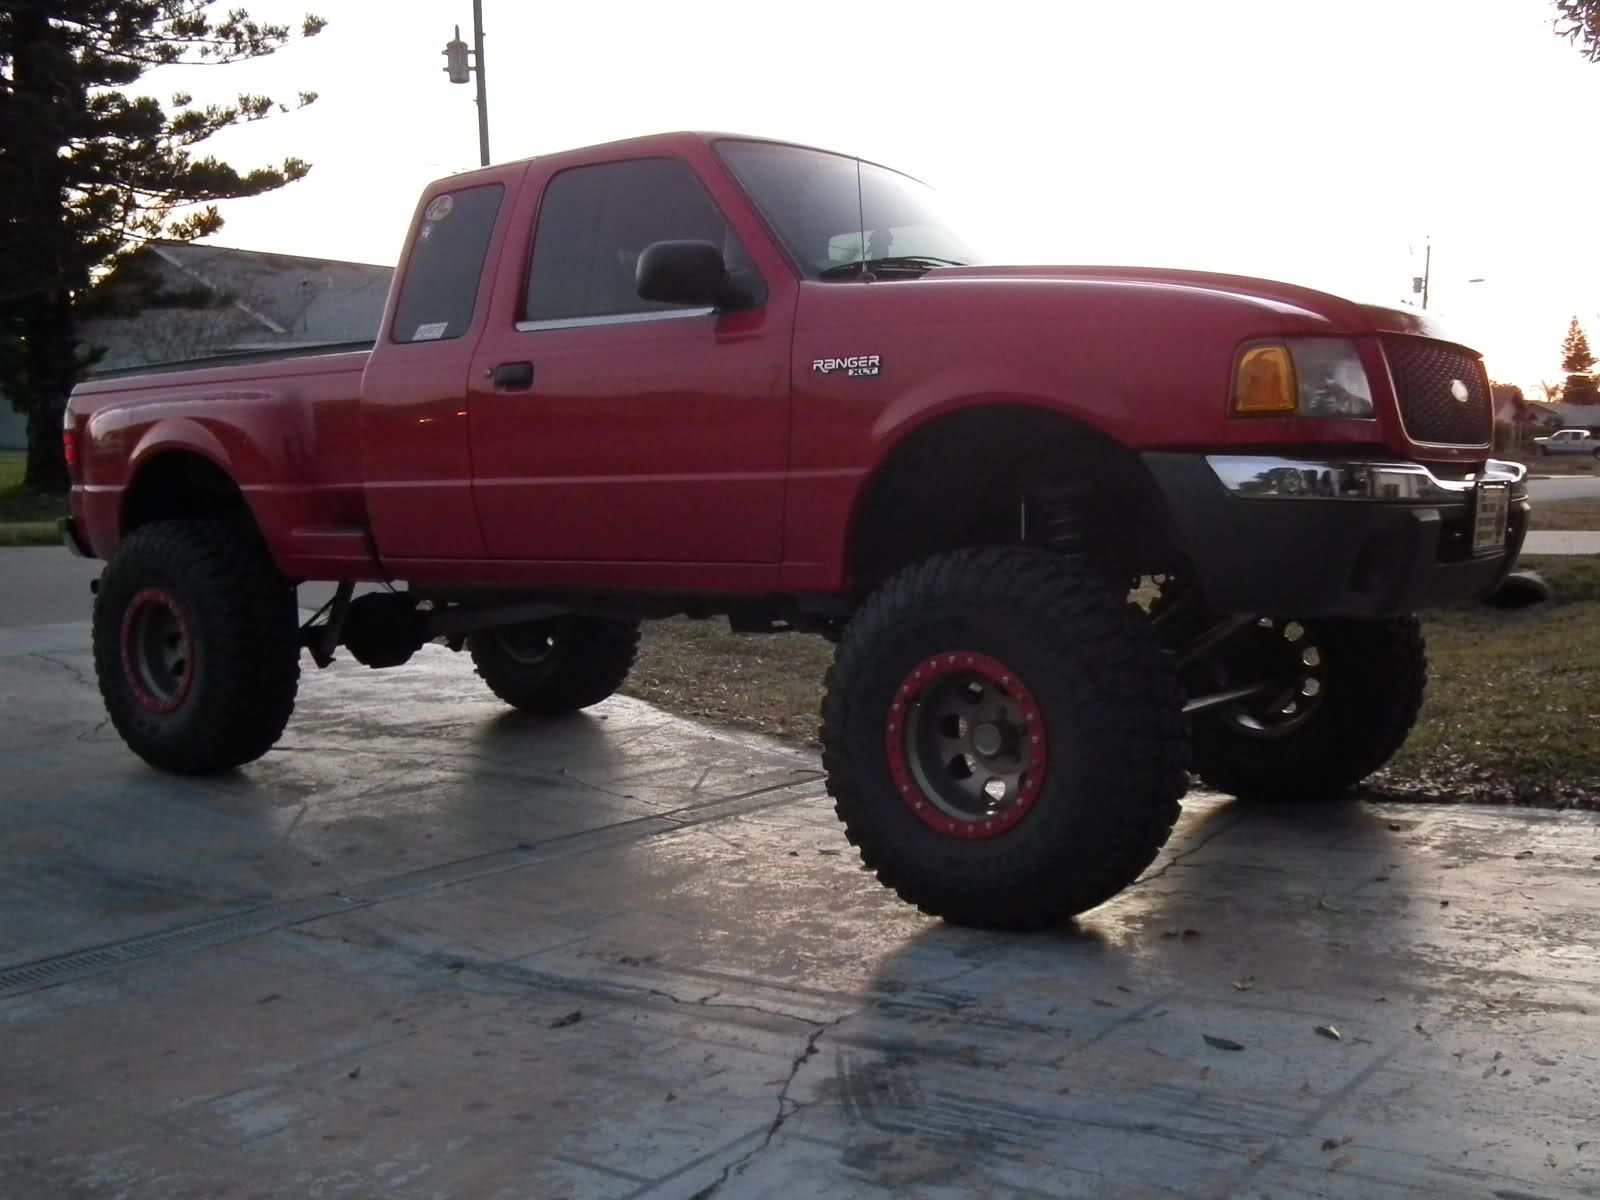 2002 Ford Ranger Edge Lift Kit 2001 Ranger Sas Cleaned Up